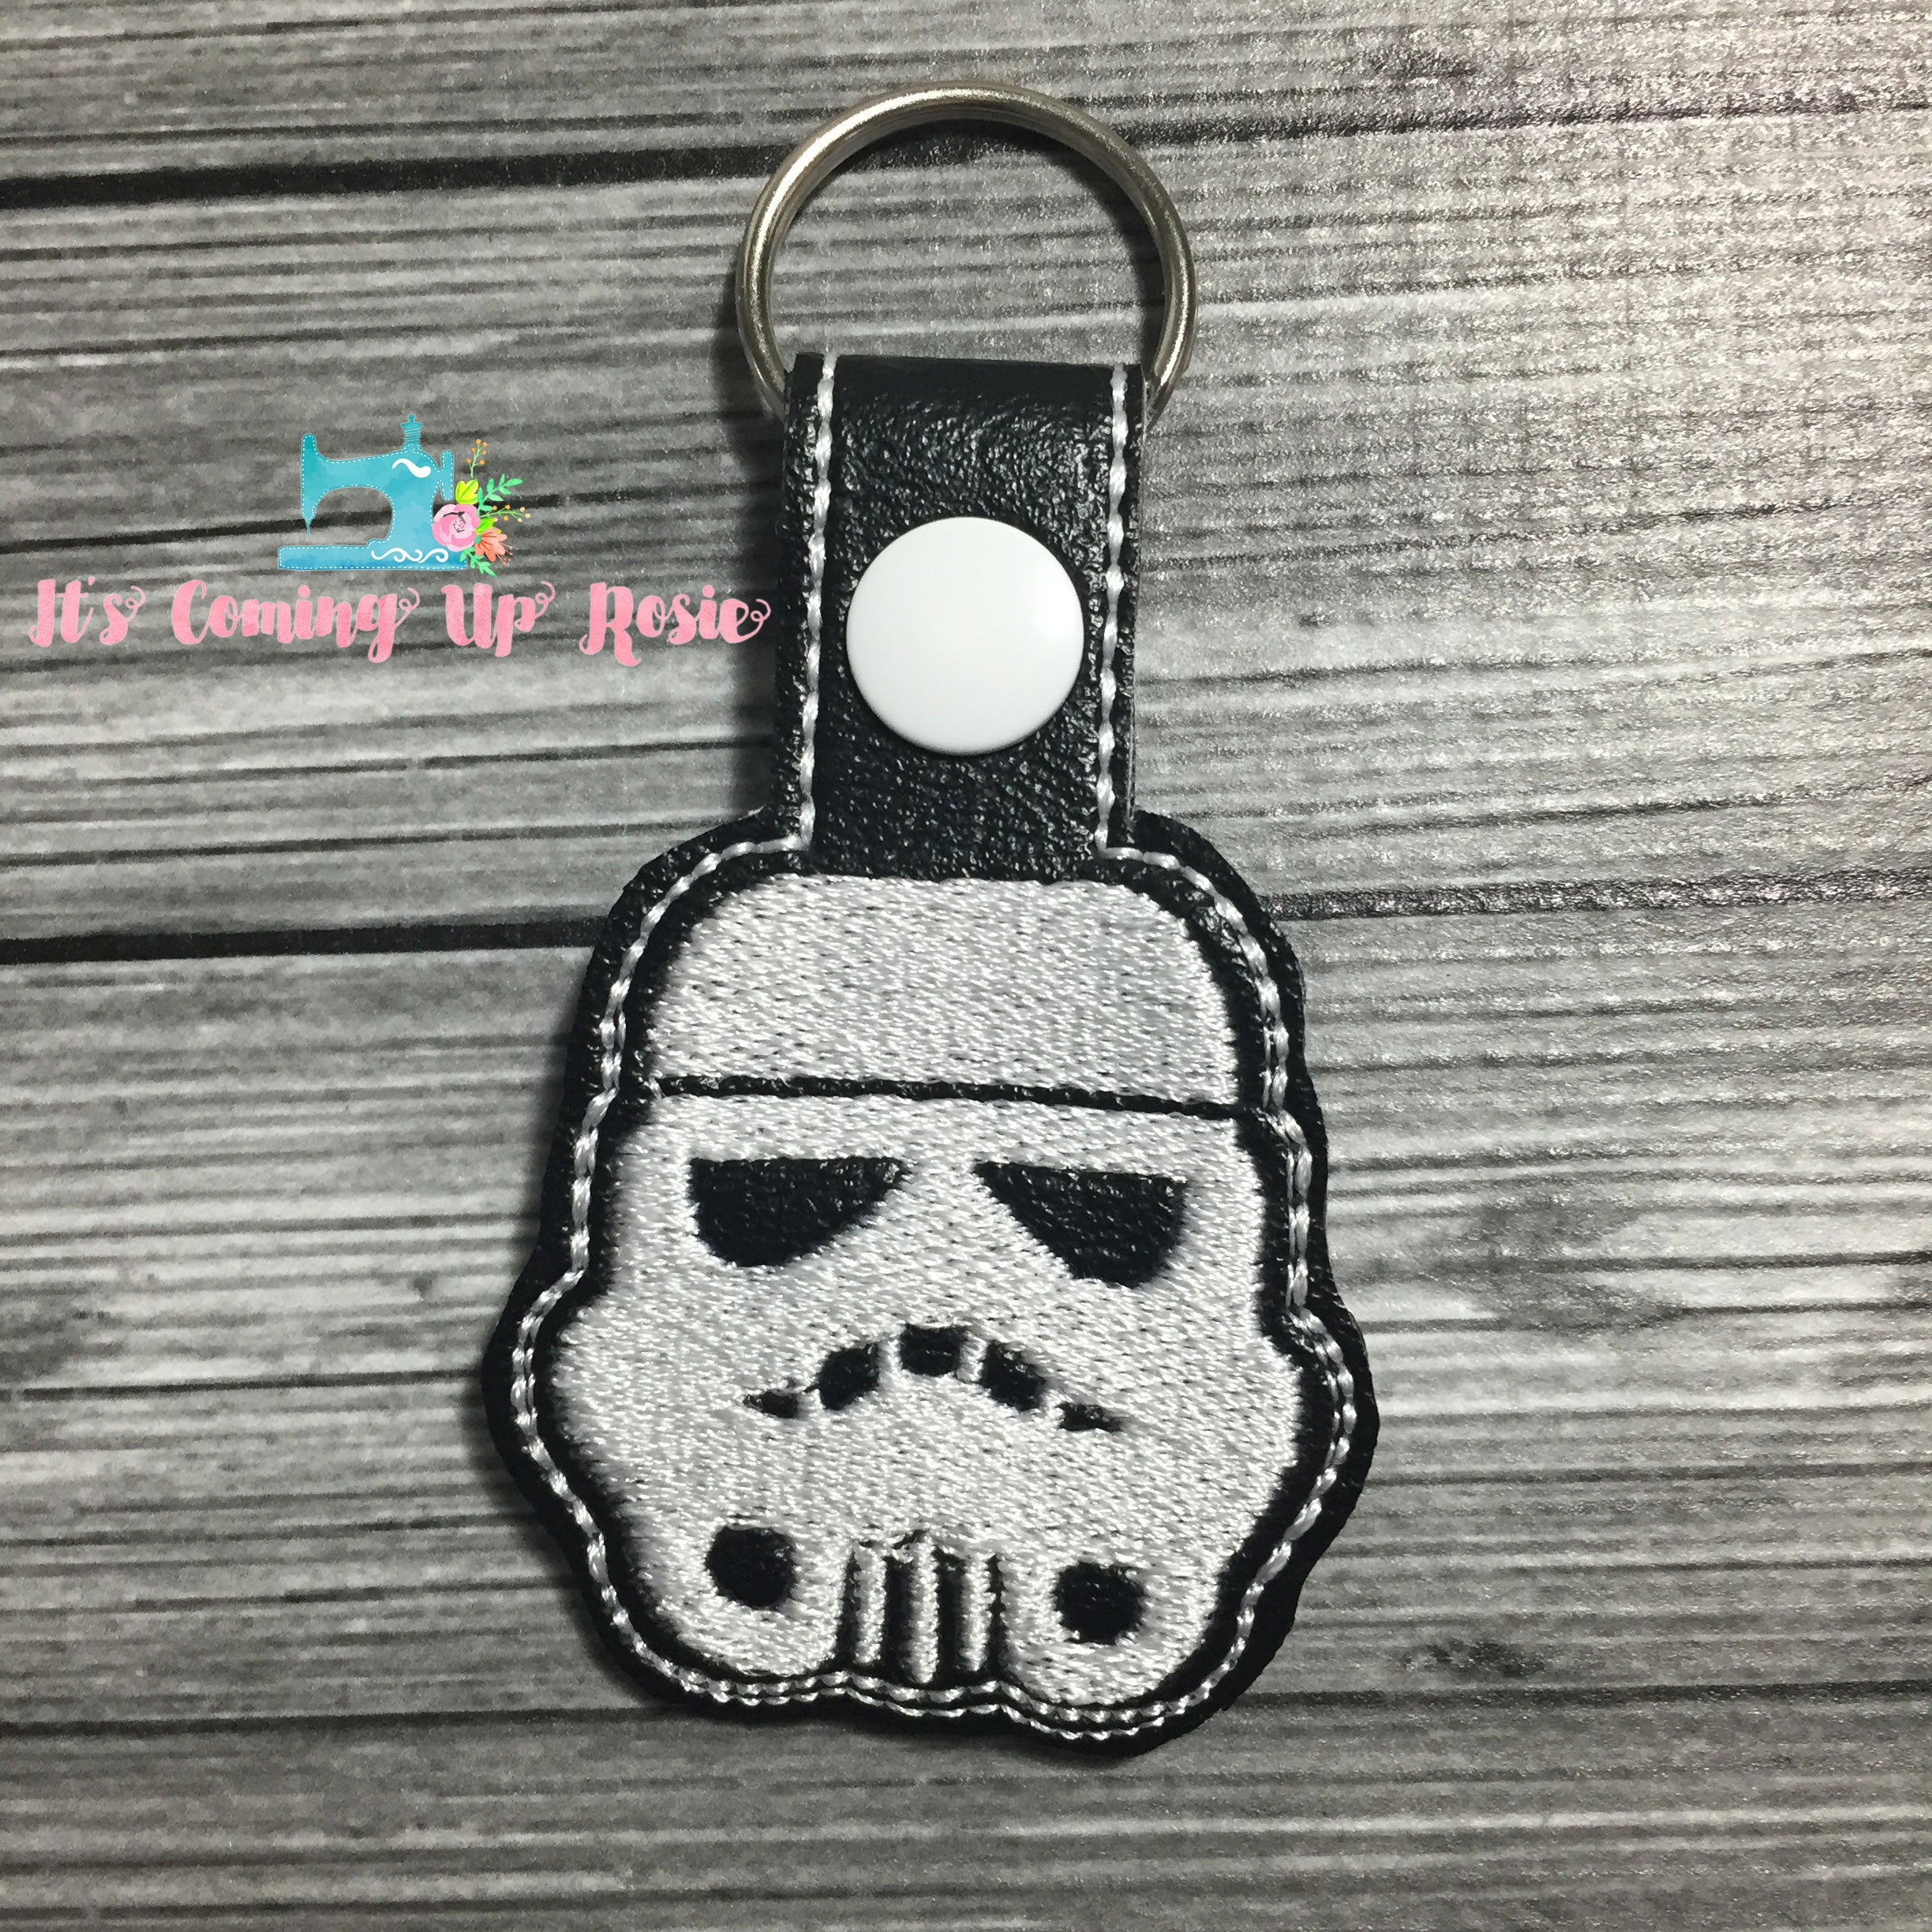 Star Wars Stormtrooper Keychain Its Coming Up Rosie